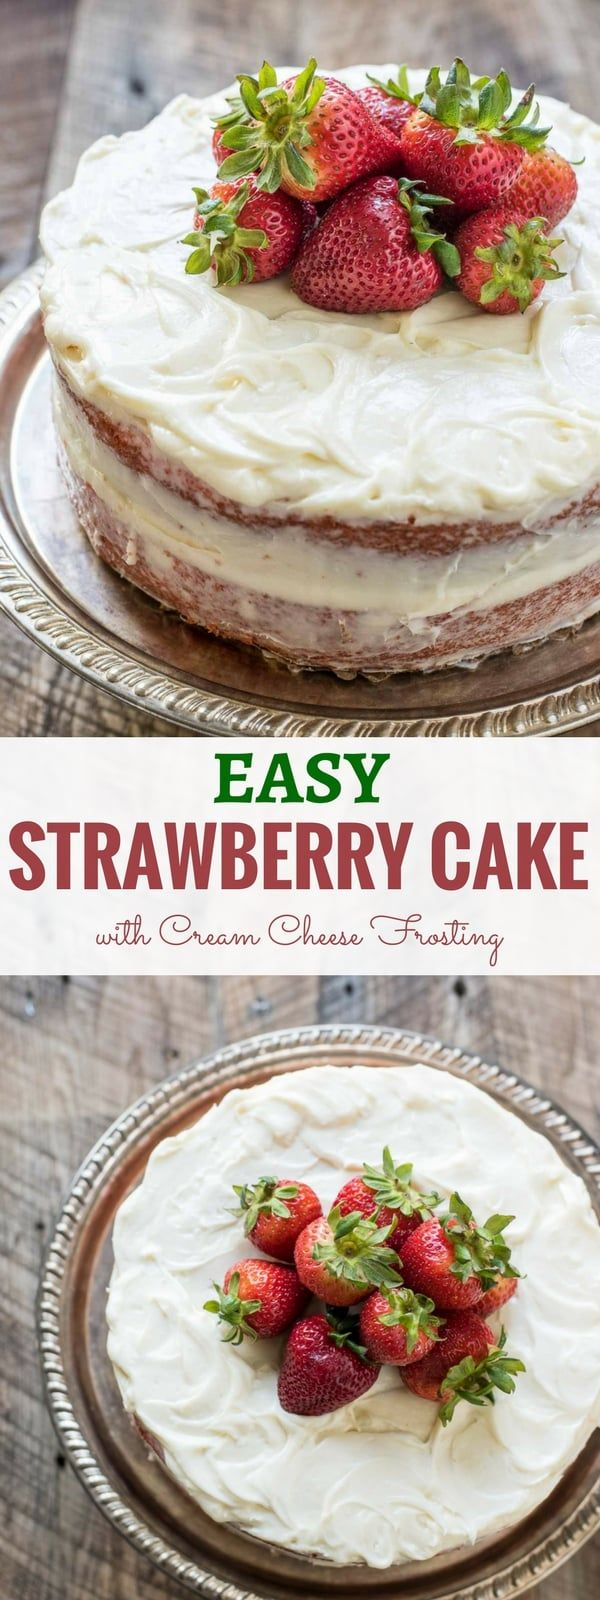 This EASY Strawberry Cake recipe makes a lovely pink layer cake full of fresh strawberry flavor and layered with cream cheese frosting.